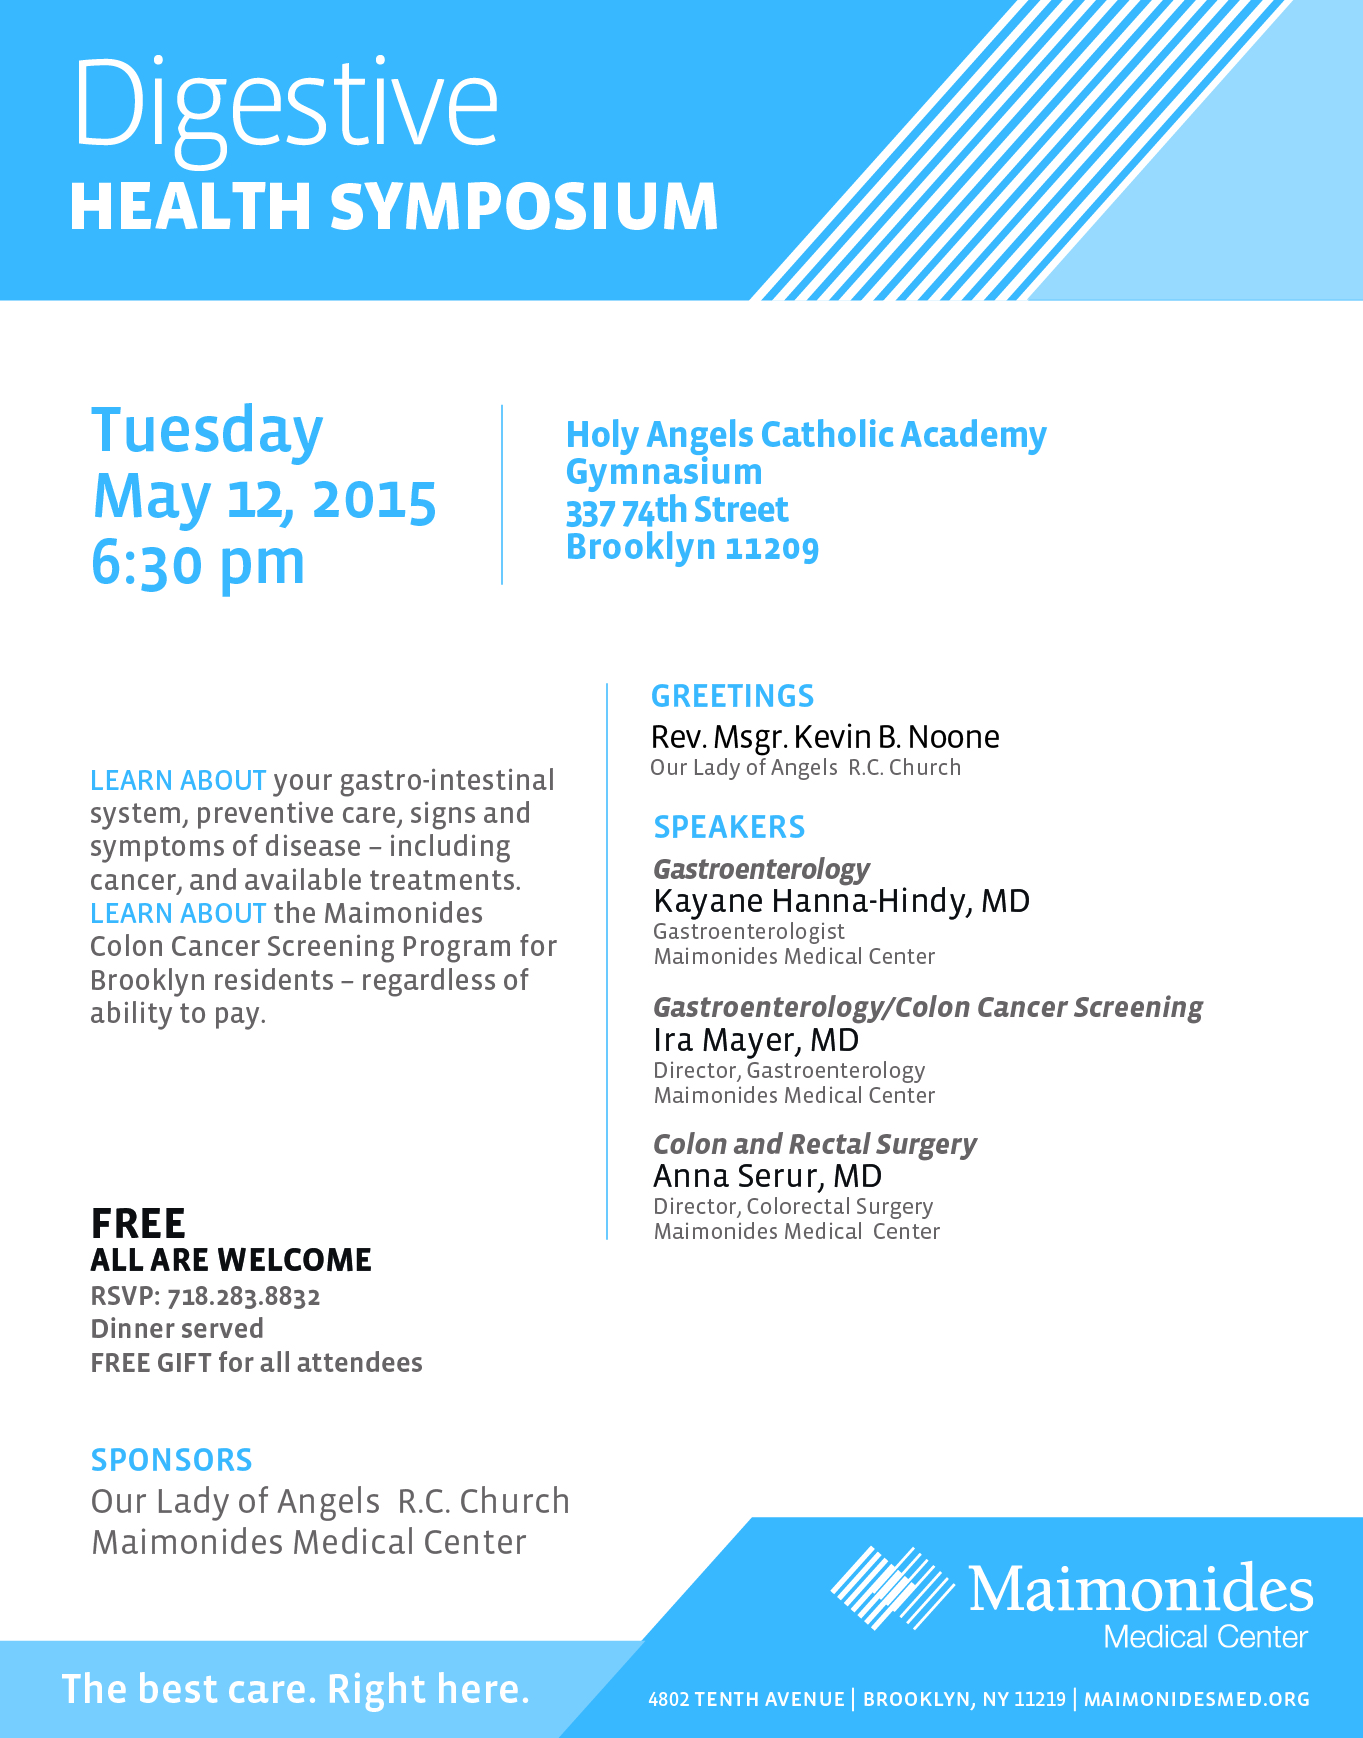 DIGESTIVE HEALTH SYMPOSIUM PRESENTED BY MAIMONIDES MEDICAL